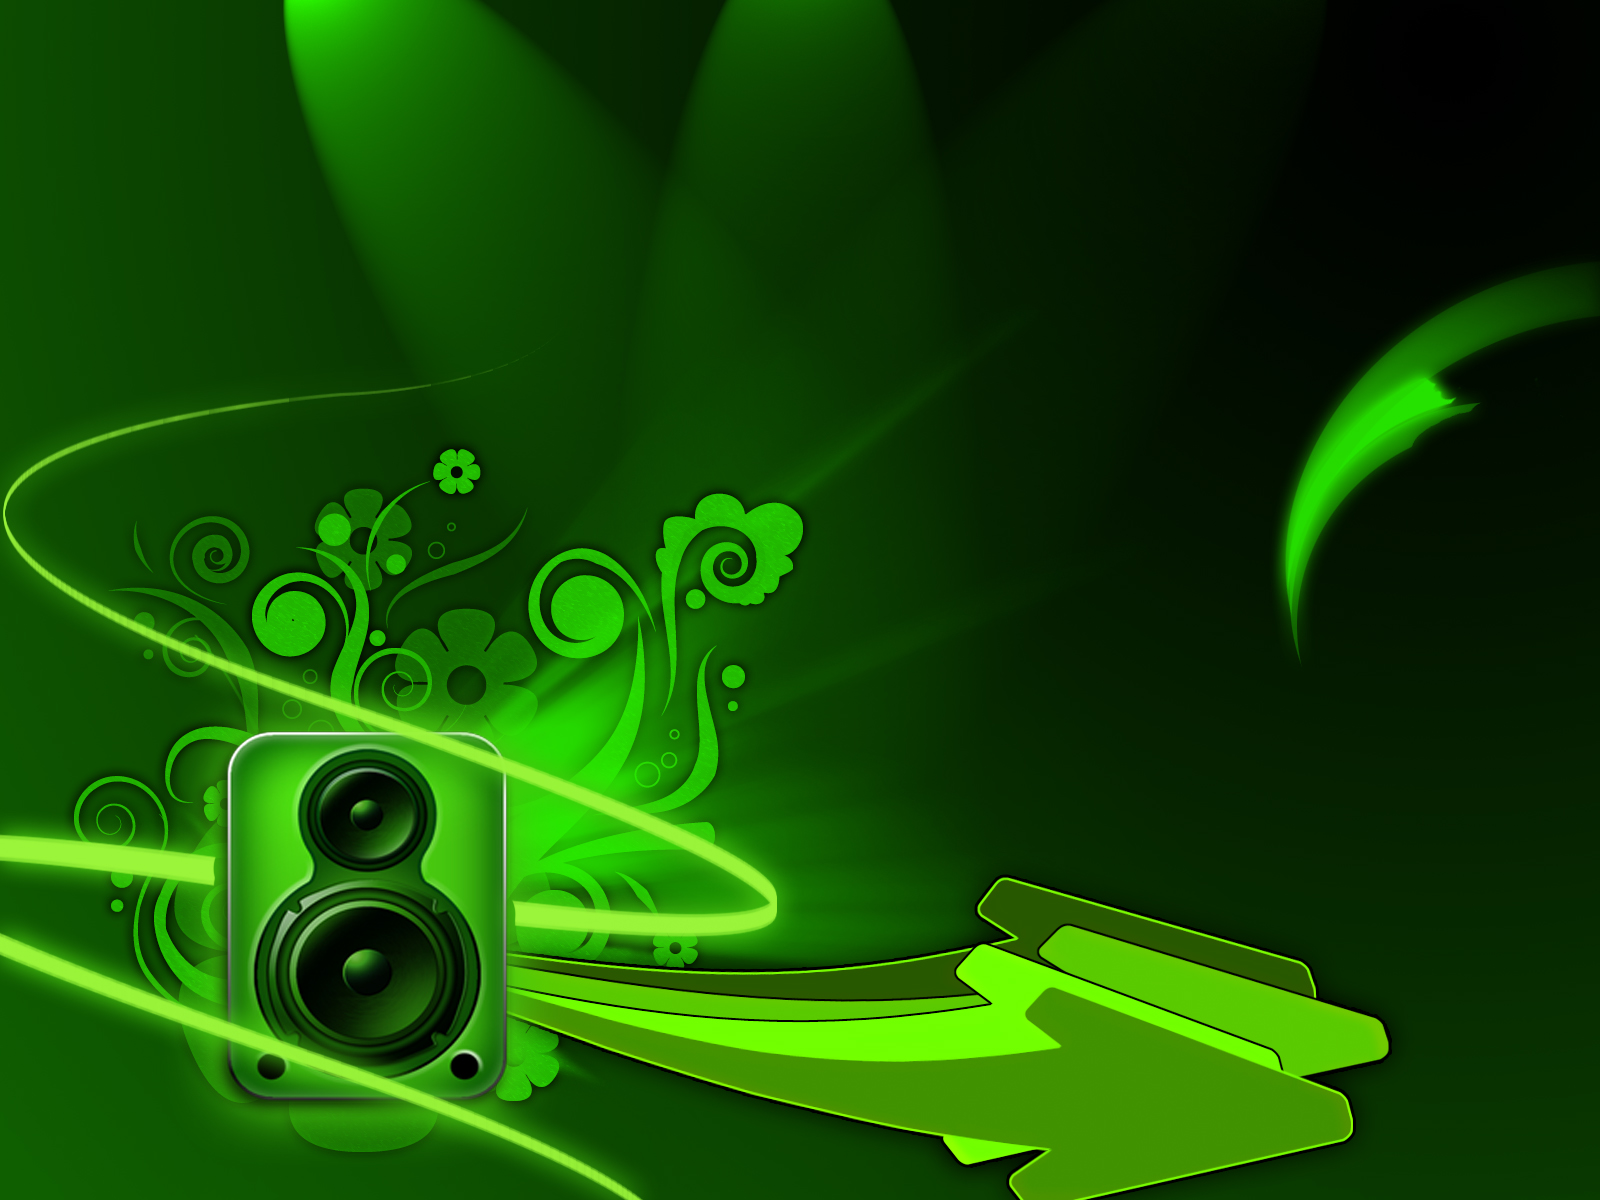 Download Wallpaper Music Neon Green - 8d1419f3114d1233cf574d8560cdd5f4  Gallery_87224.jpg